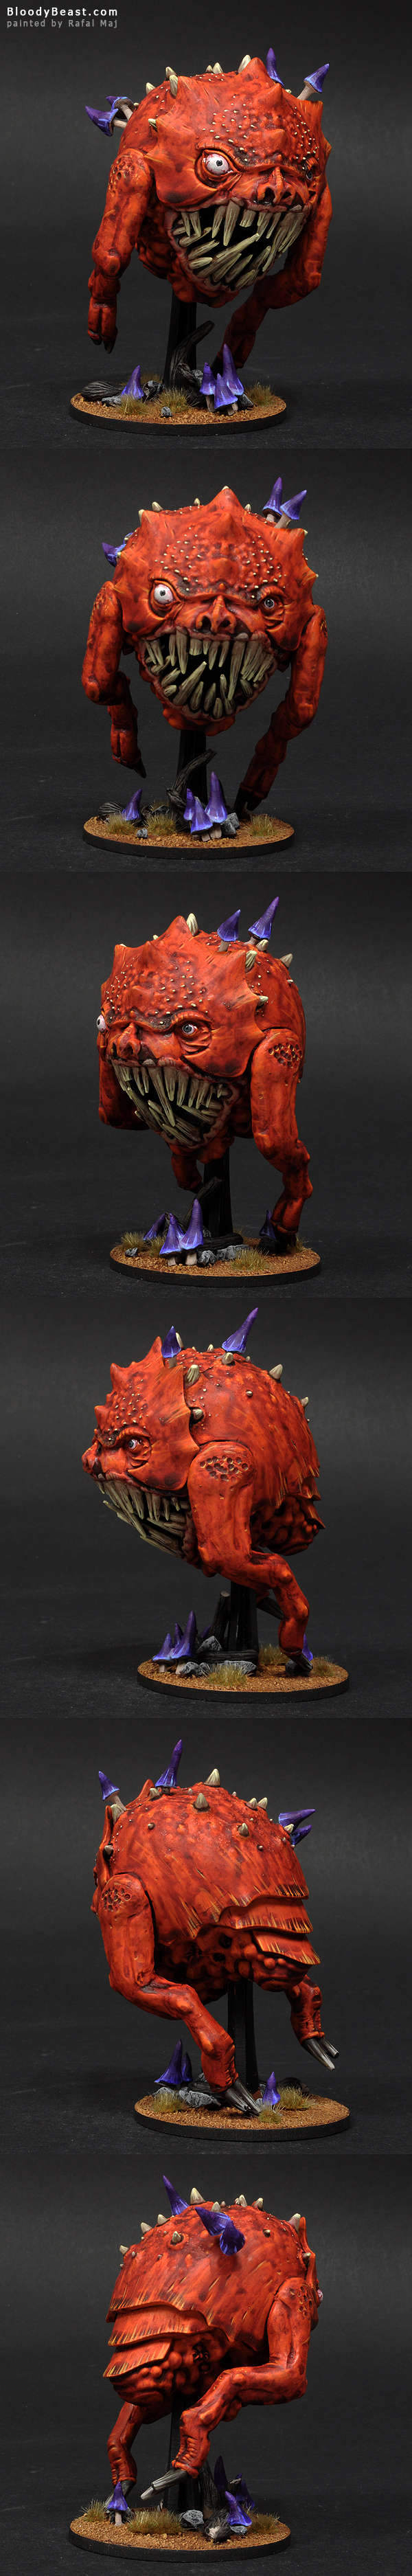 Huge Mangler Squig painted by Rafal Maj (BloodyBeast.com)